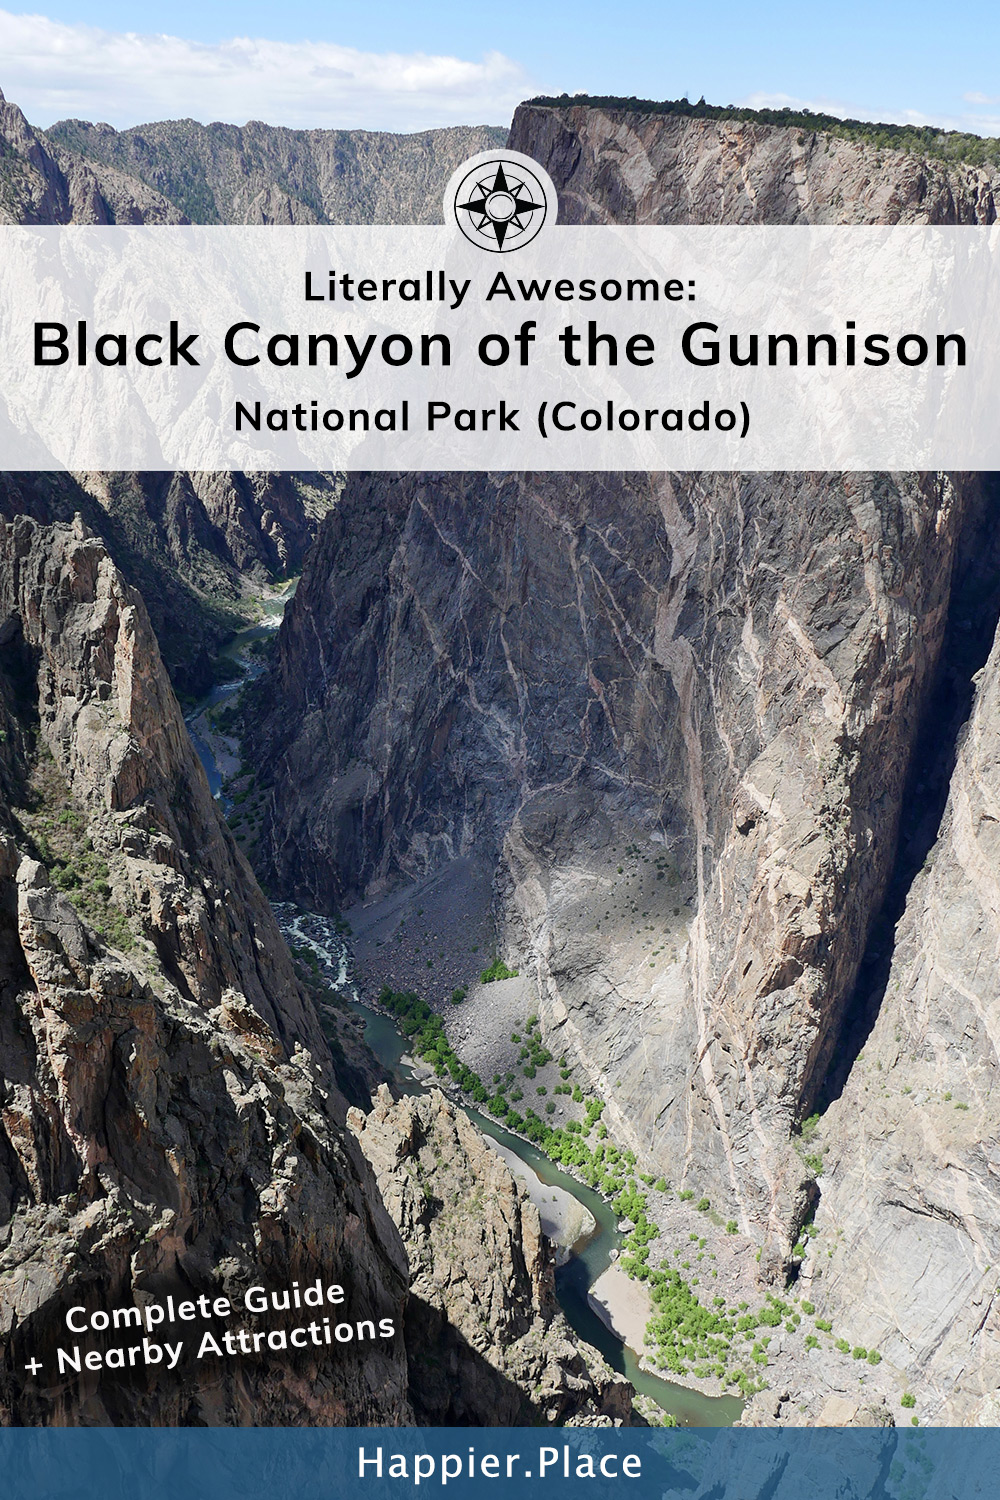 Black Canyon of the Gunnison National Park in Colorado Painted Wall complete guide HappierPlace